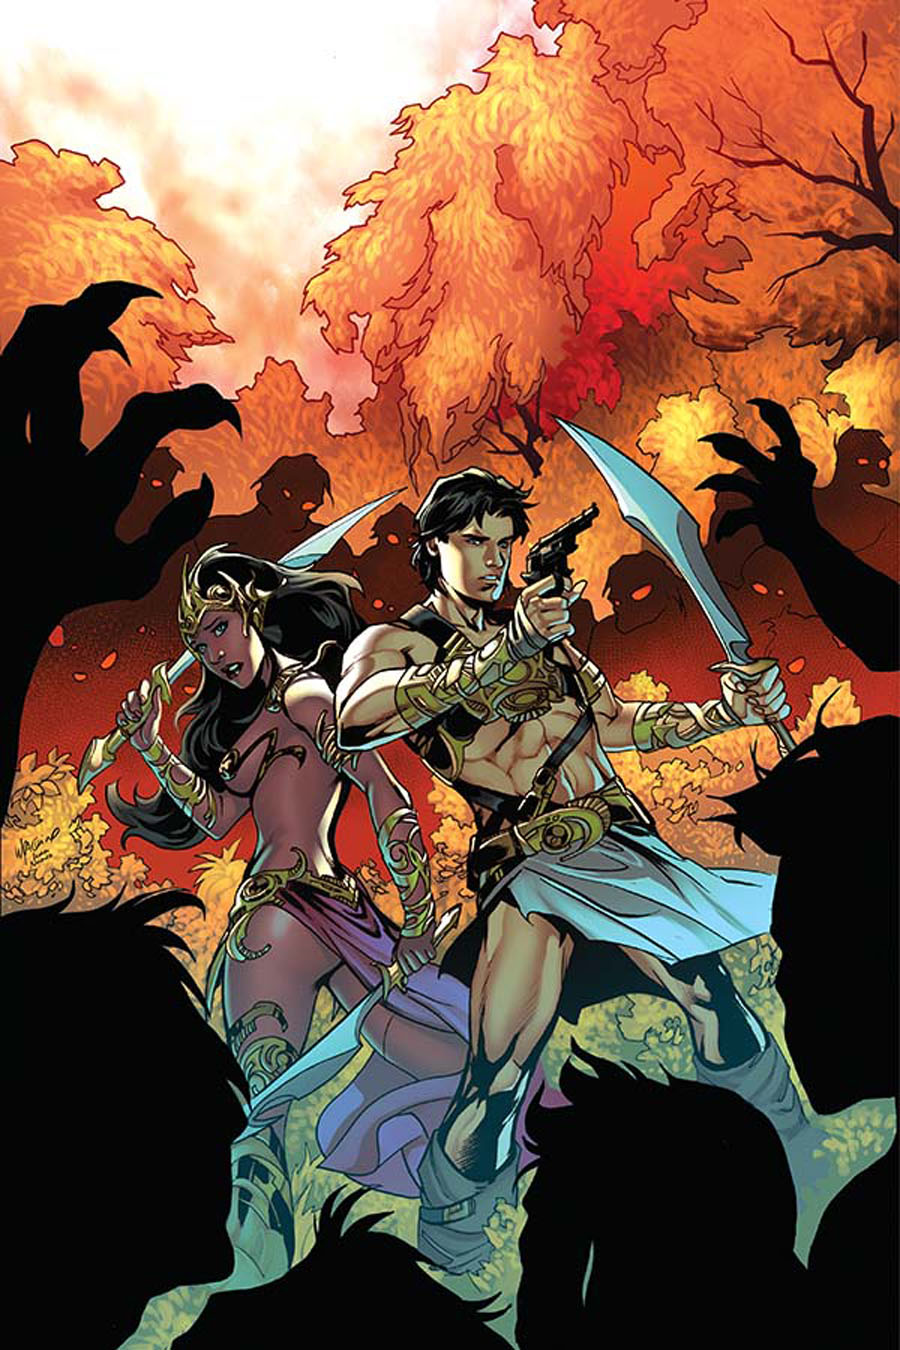 John Carter Warlord Of Mars Vol 2 #8 Cover G Incentive Emanuela Lupacchino Virgin Cover